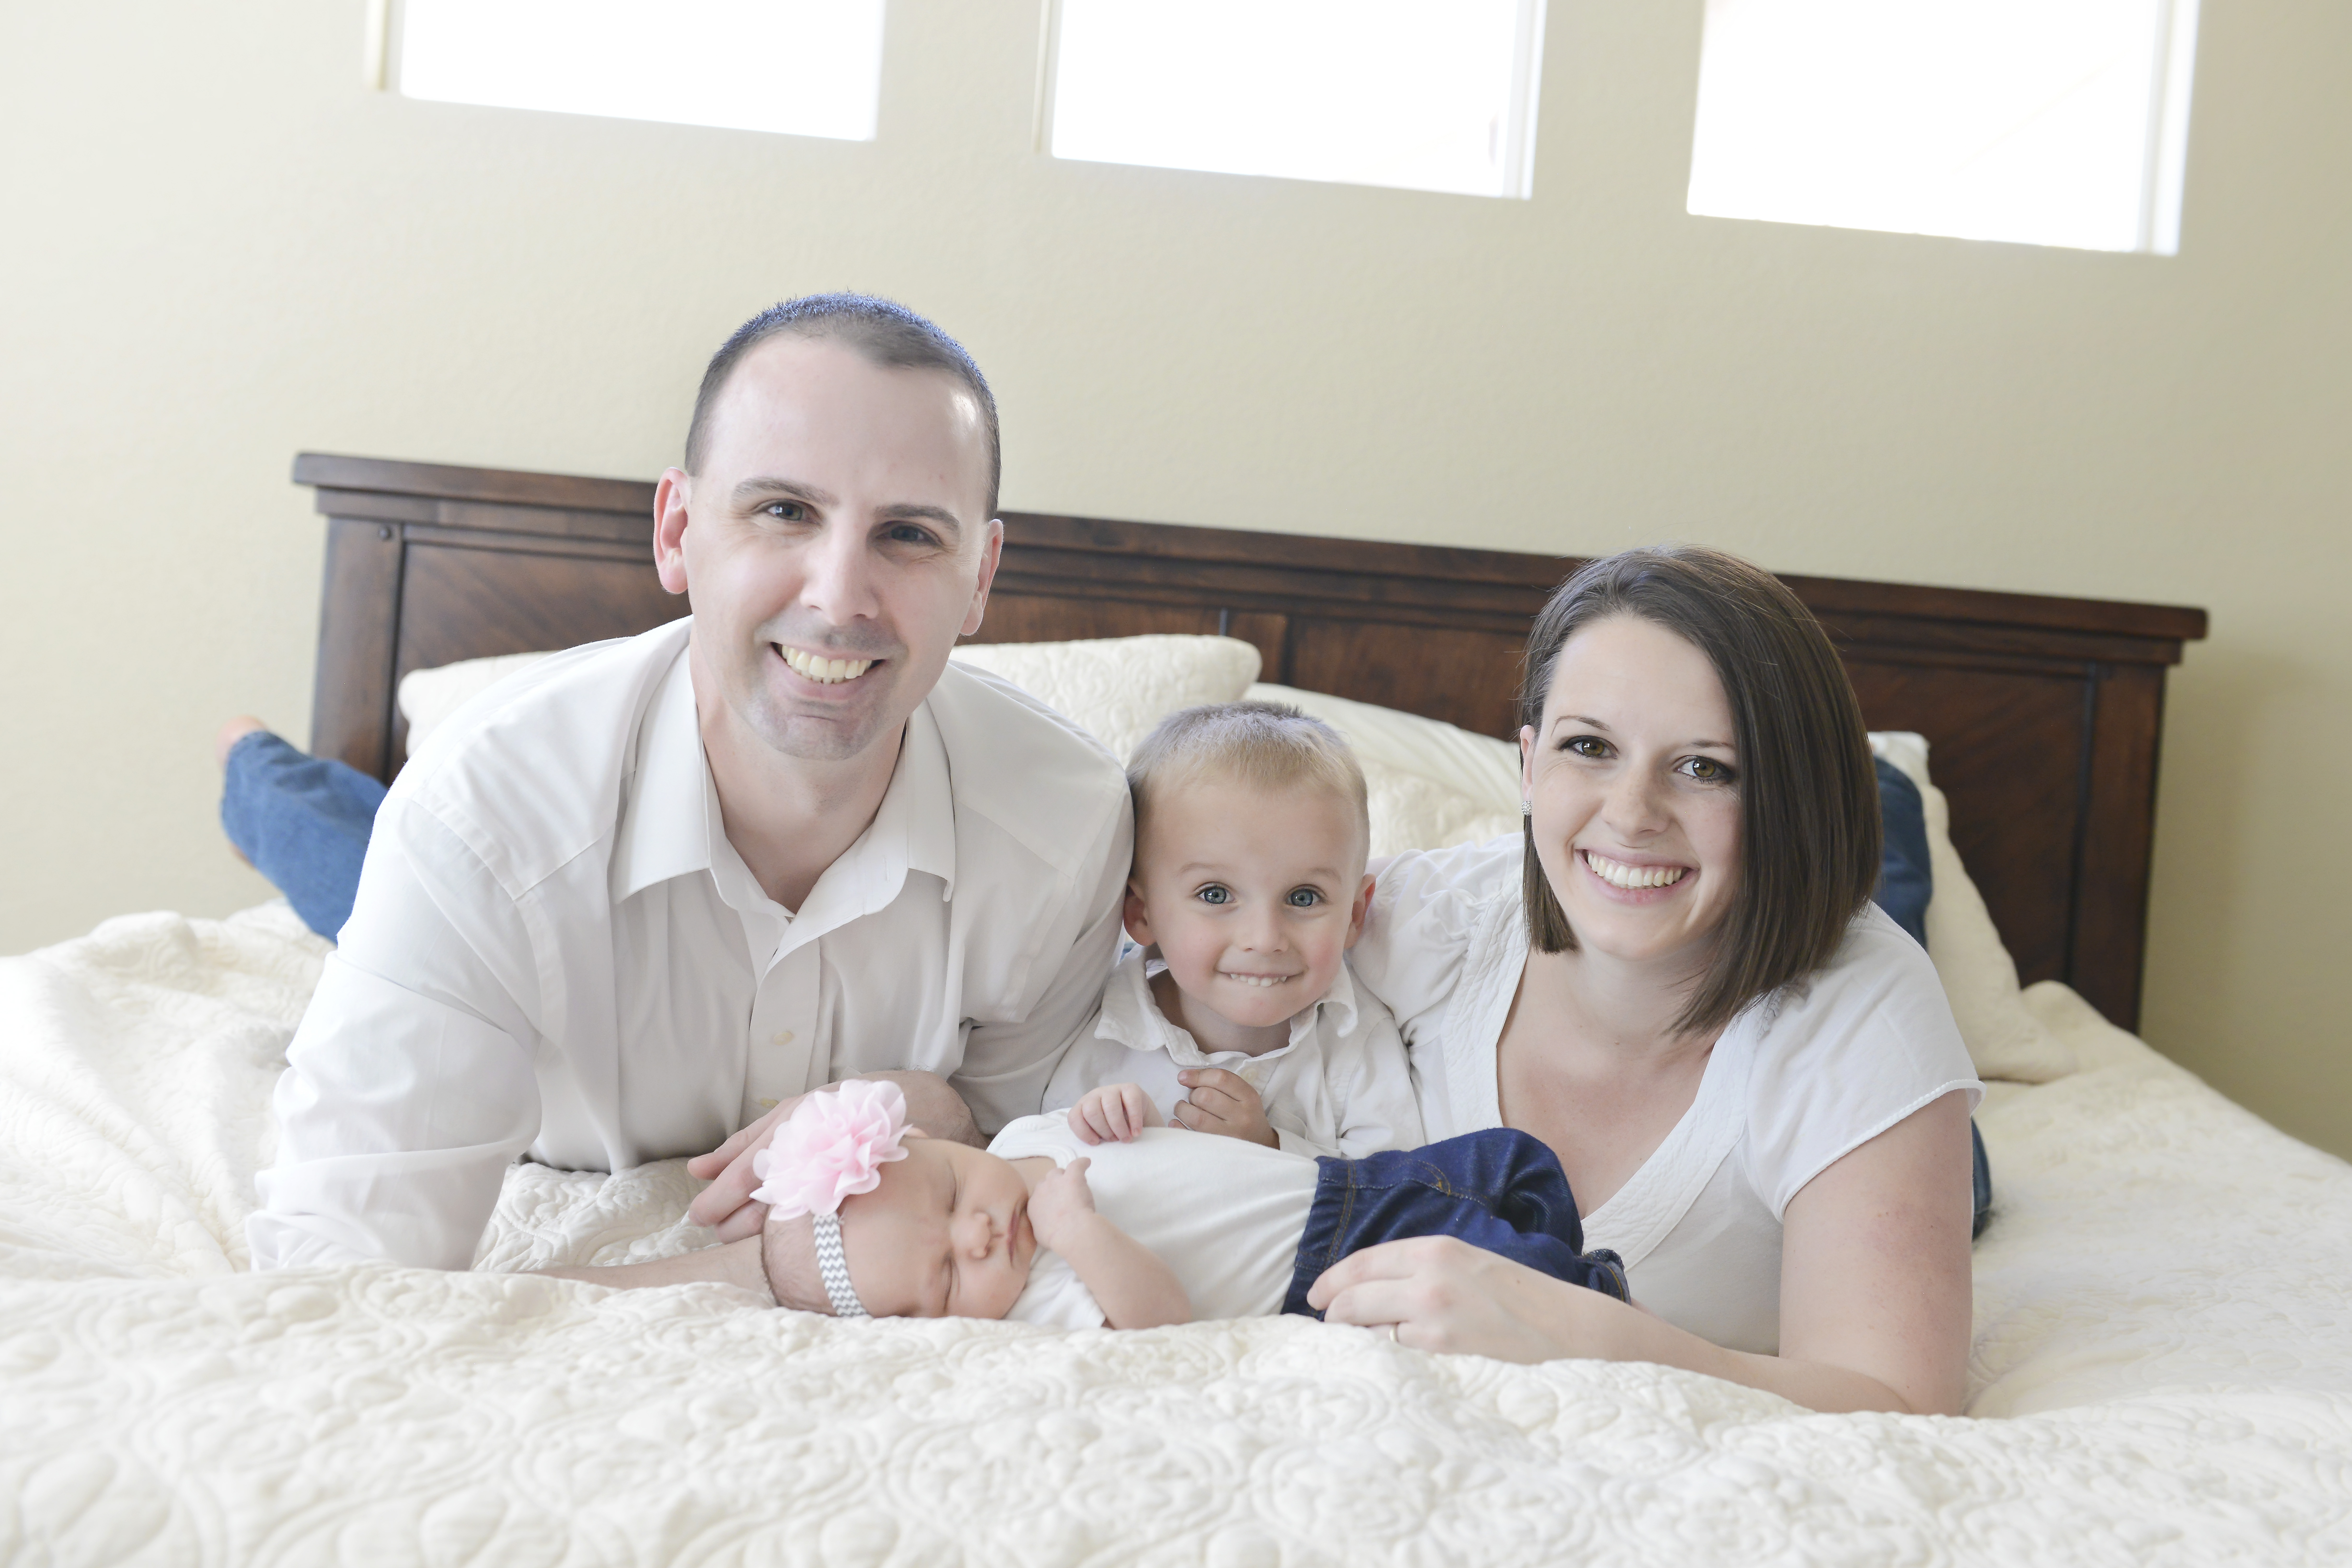 Dr. David Hite with his wife and two children, Dawson (between mom and dad) and Teagan